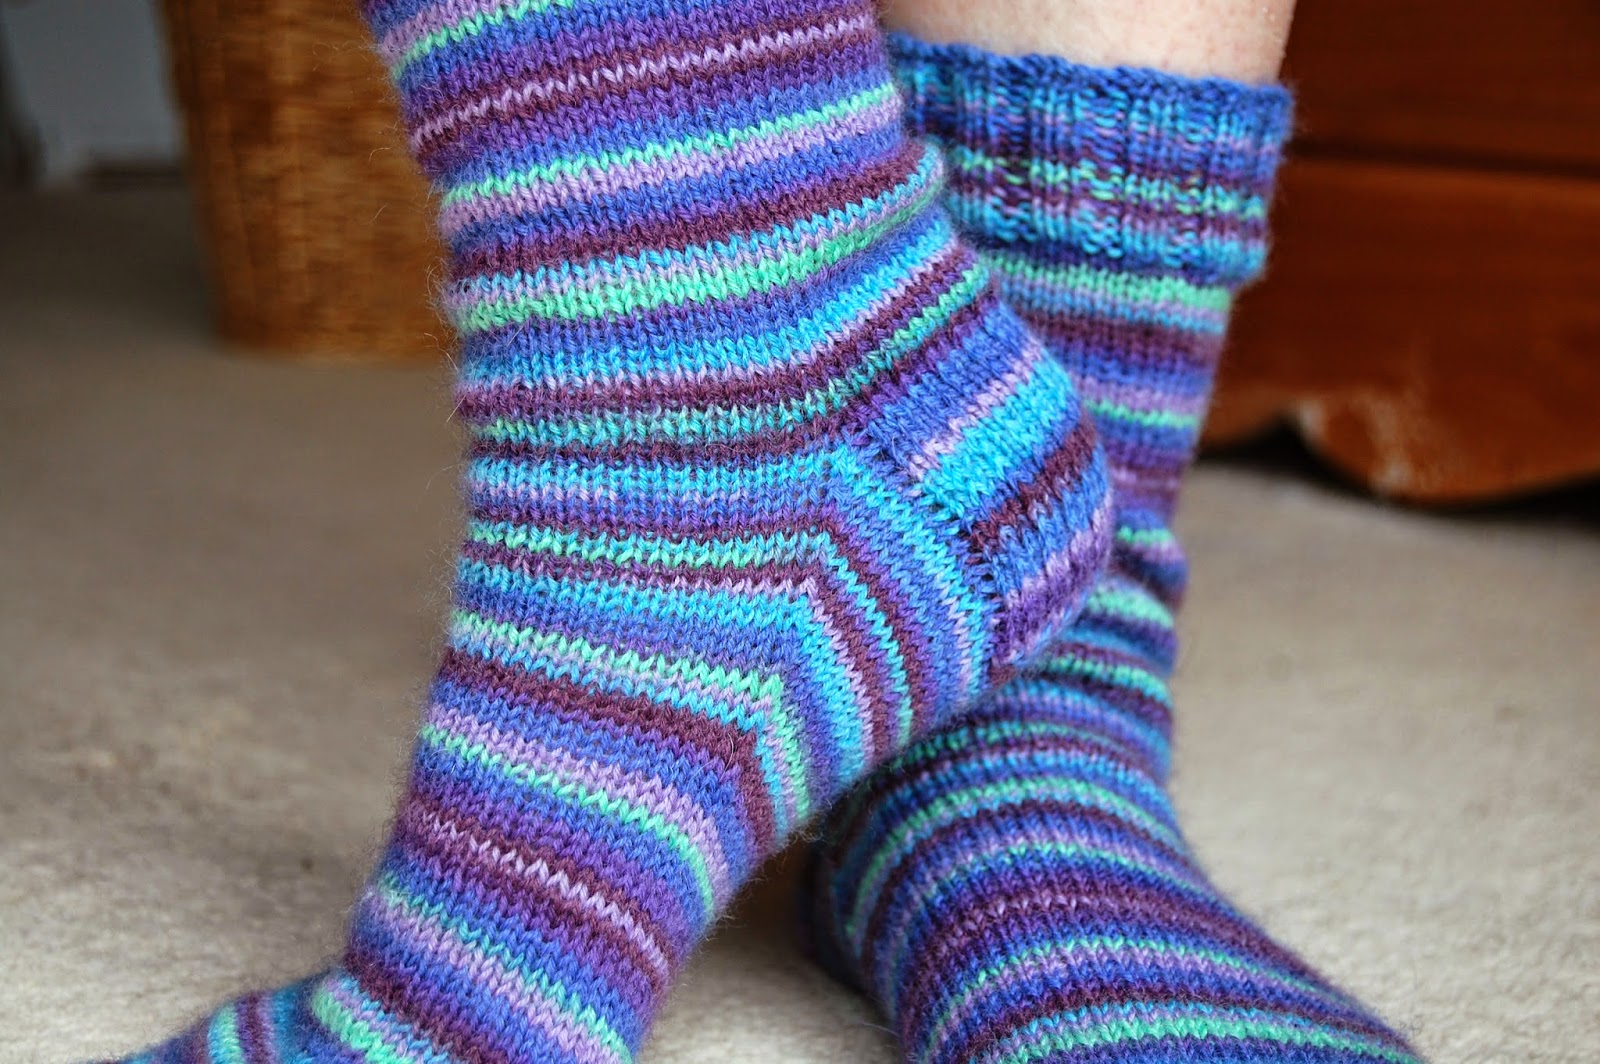 Winwick Mum: Basic 4ply sock pattern and tutorial - easy beginner sock knitting!